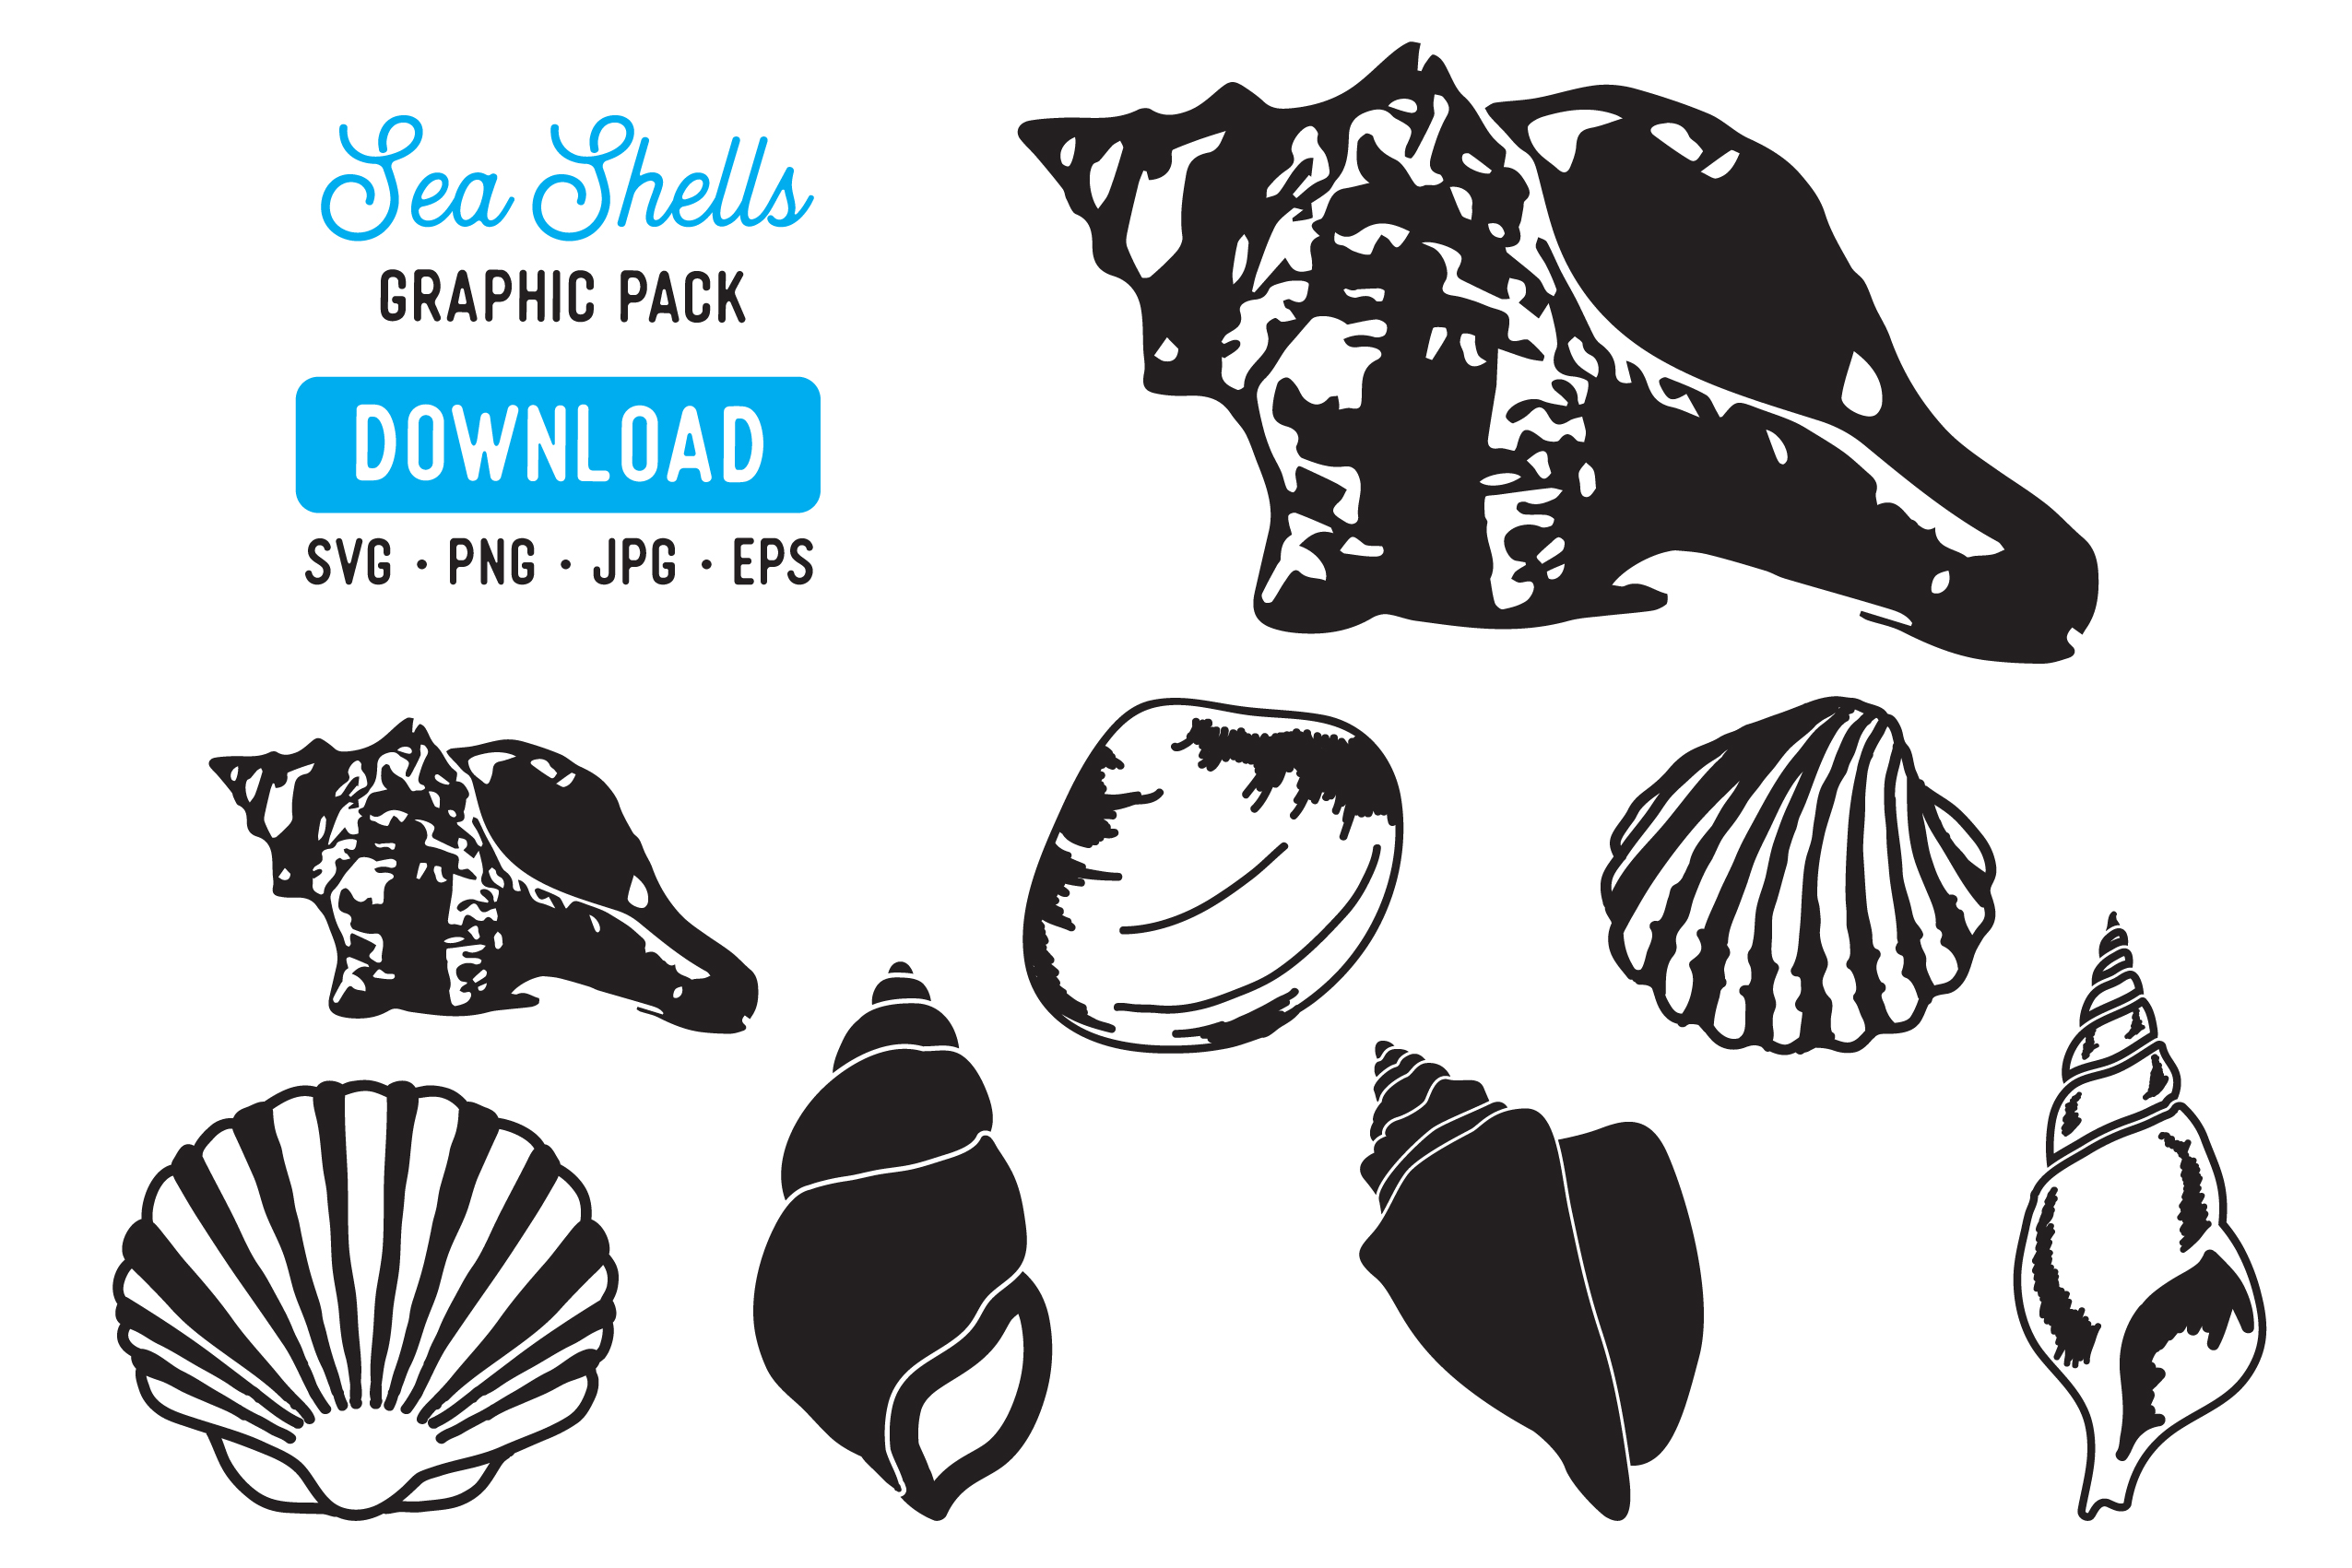 Download Free Sea Shells Vector Graphic By The Gradient Fox Creative Fabrica for Cricut Explore, Silhouette and other cutting machines.